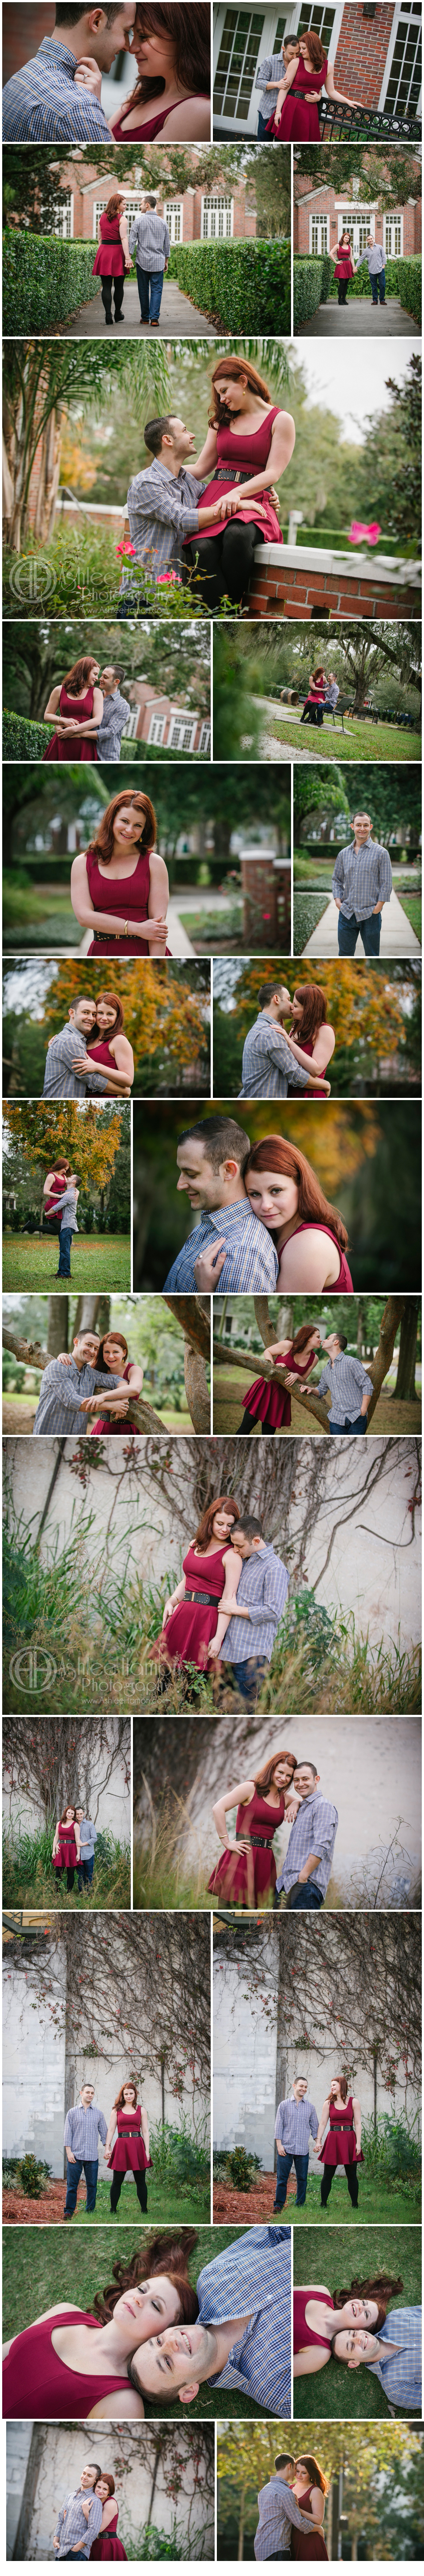 Seminole Heights Engagement Session